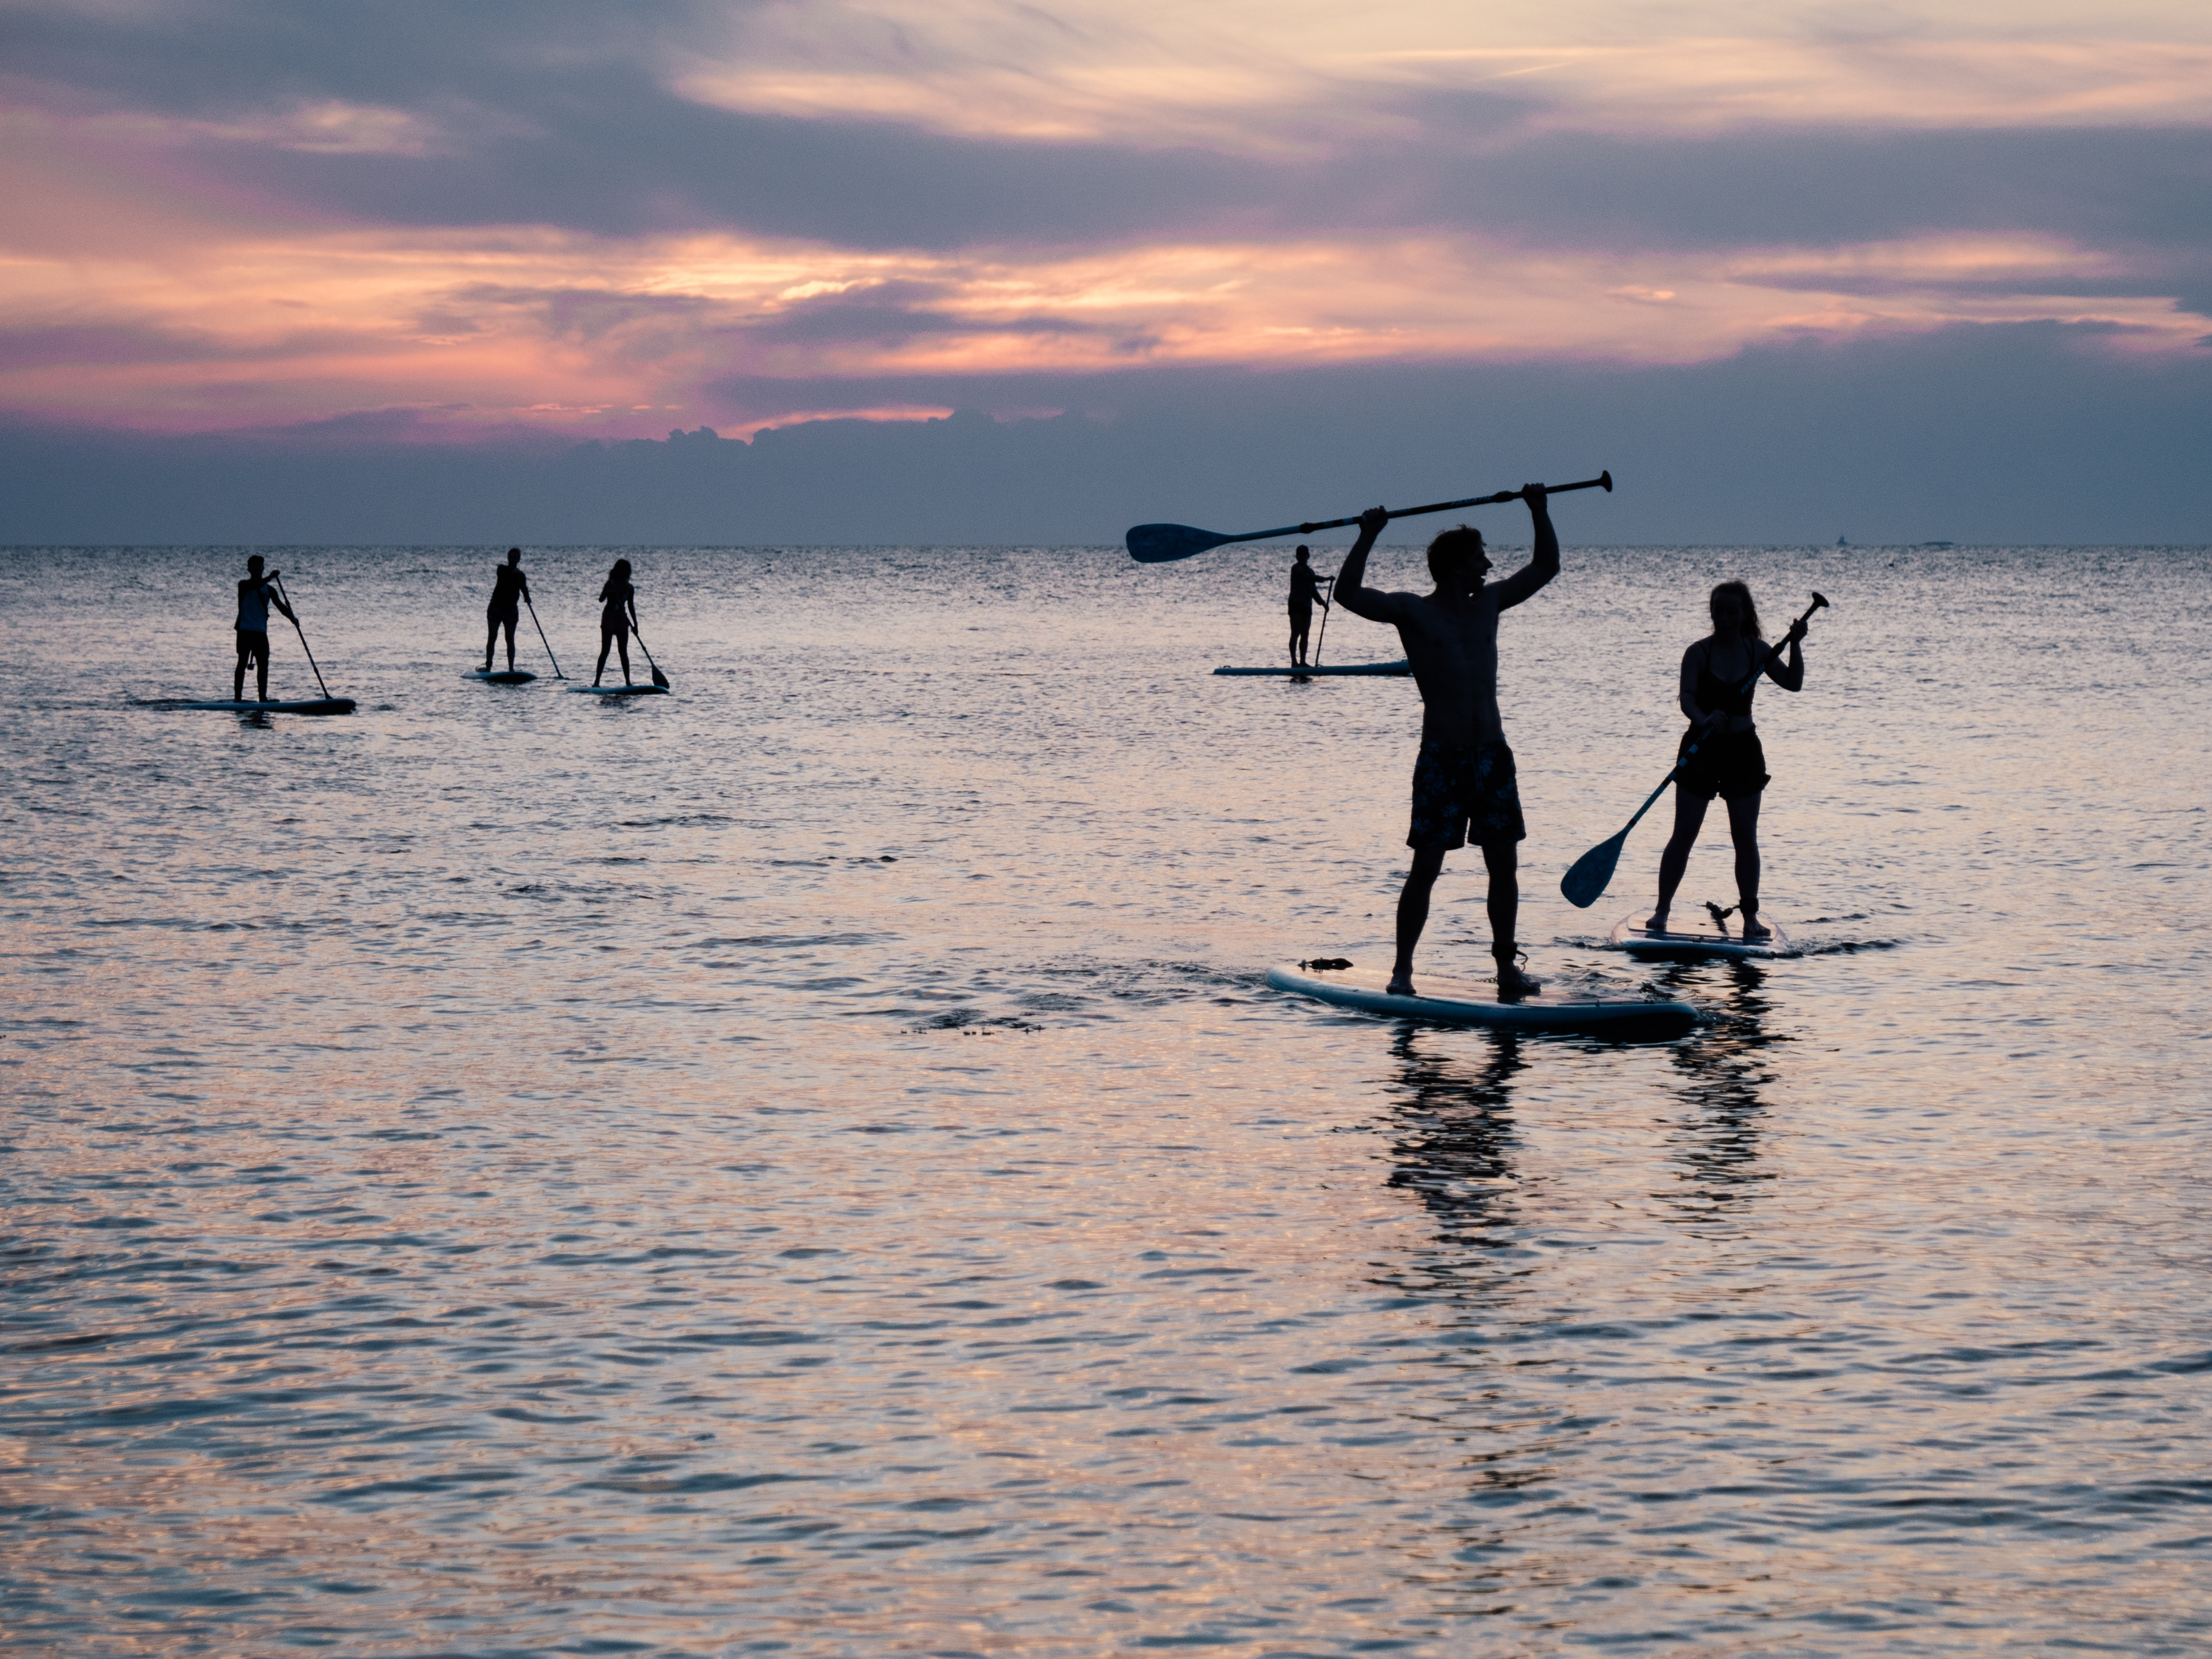 Best SUP spots in London and across the UK: Get ready to SUP it up!